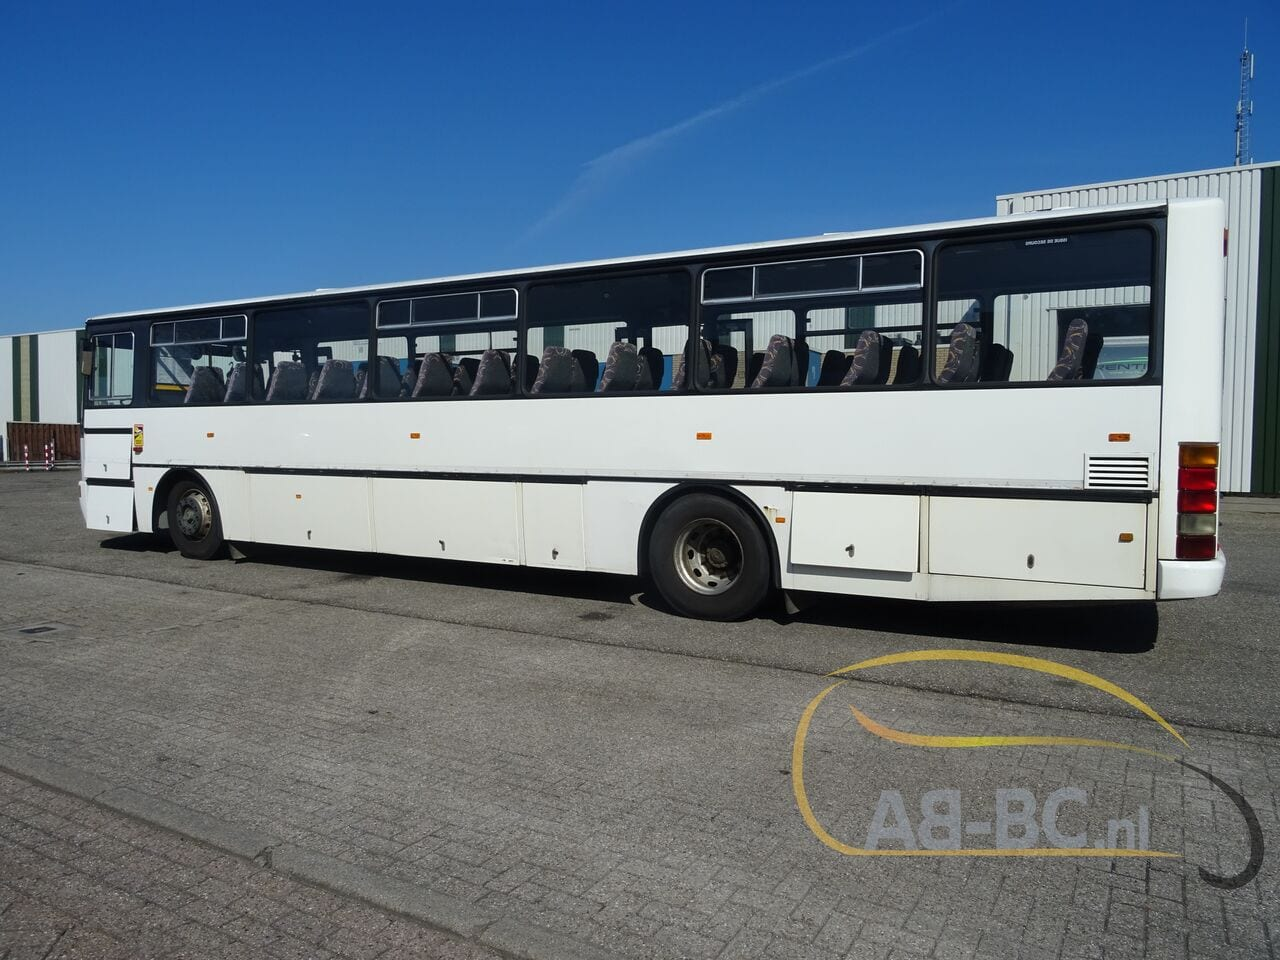 interurban-busIVECO-Irisbus-Recreo-59-Seats---1619430687737996735_big_d366e07d10b2af7dce0cec4992f4c1f9--21042612454255740900